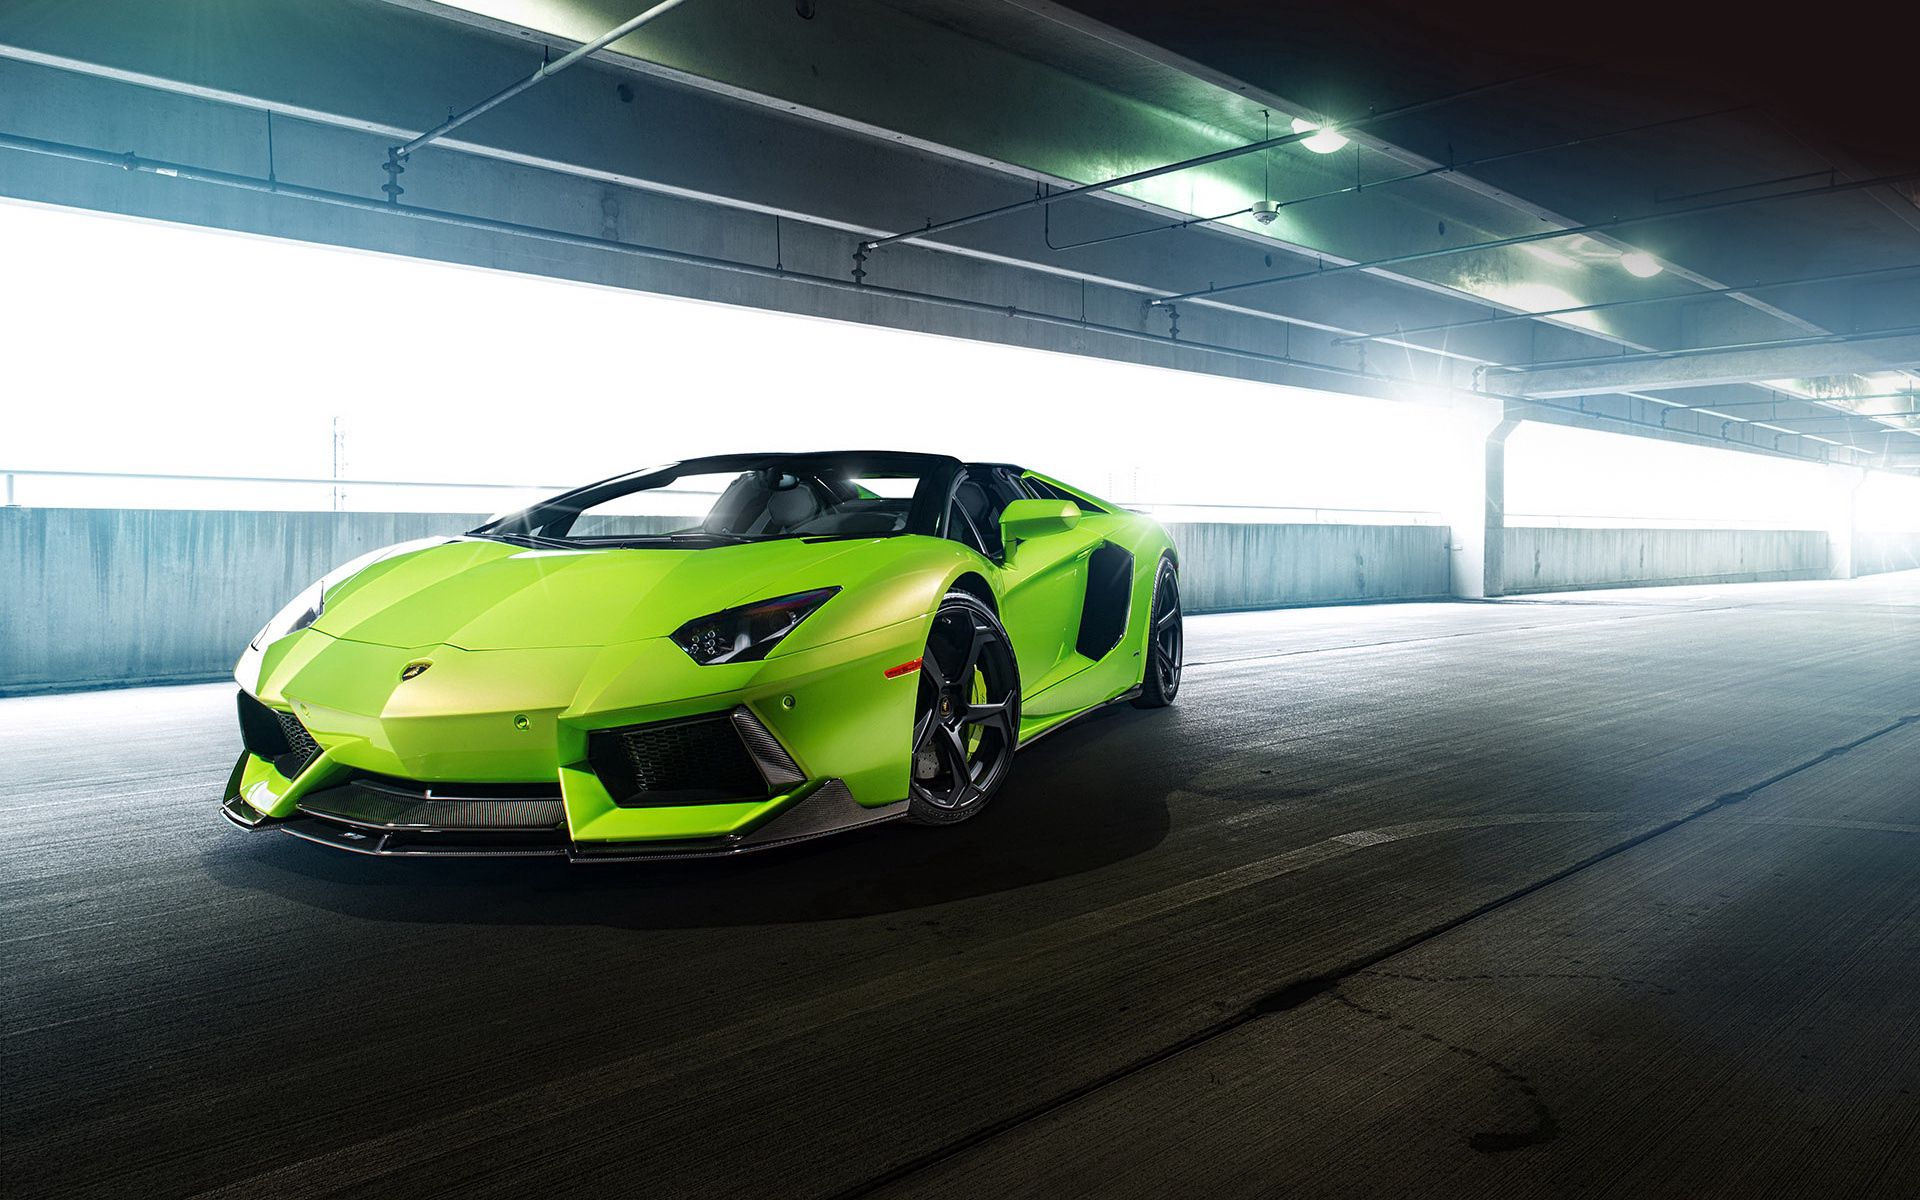 109633 free download Green wallpapers for phone, Cars, Lp-740, Aventador, Vorsteiner, Aventador-Vs, Lamborghini Green images and screensavers for mobile